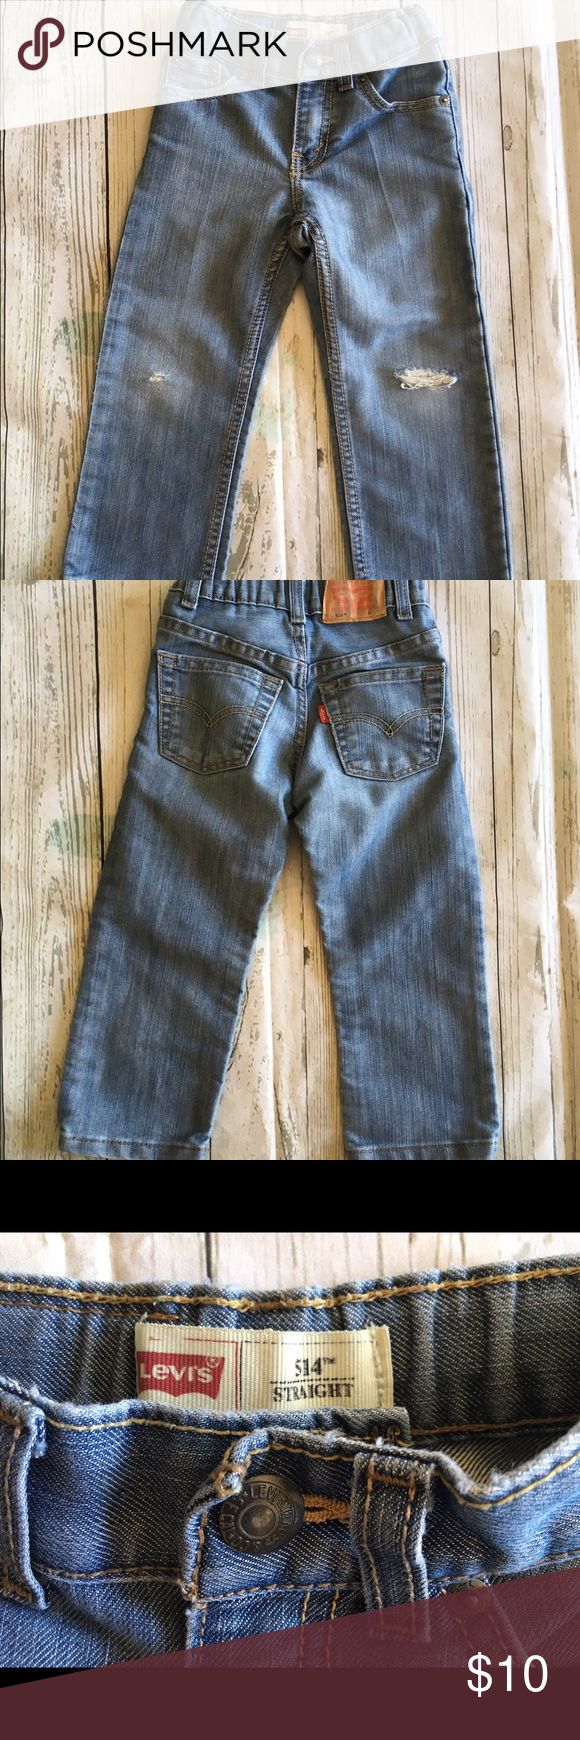 Levi's 514 Toddler Boys Distressed Jeans Size 3T Levi's 514 Toddler Boys Distressed Light Wash Denim Jeans Size 3T . #1222716 Levi's Bottoms Jeans